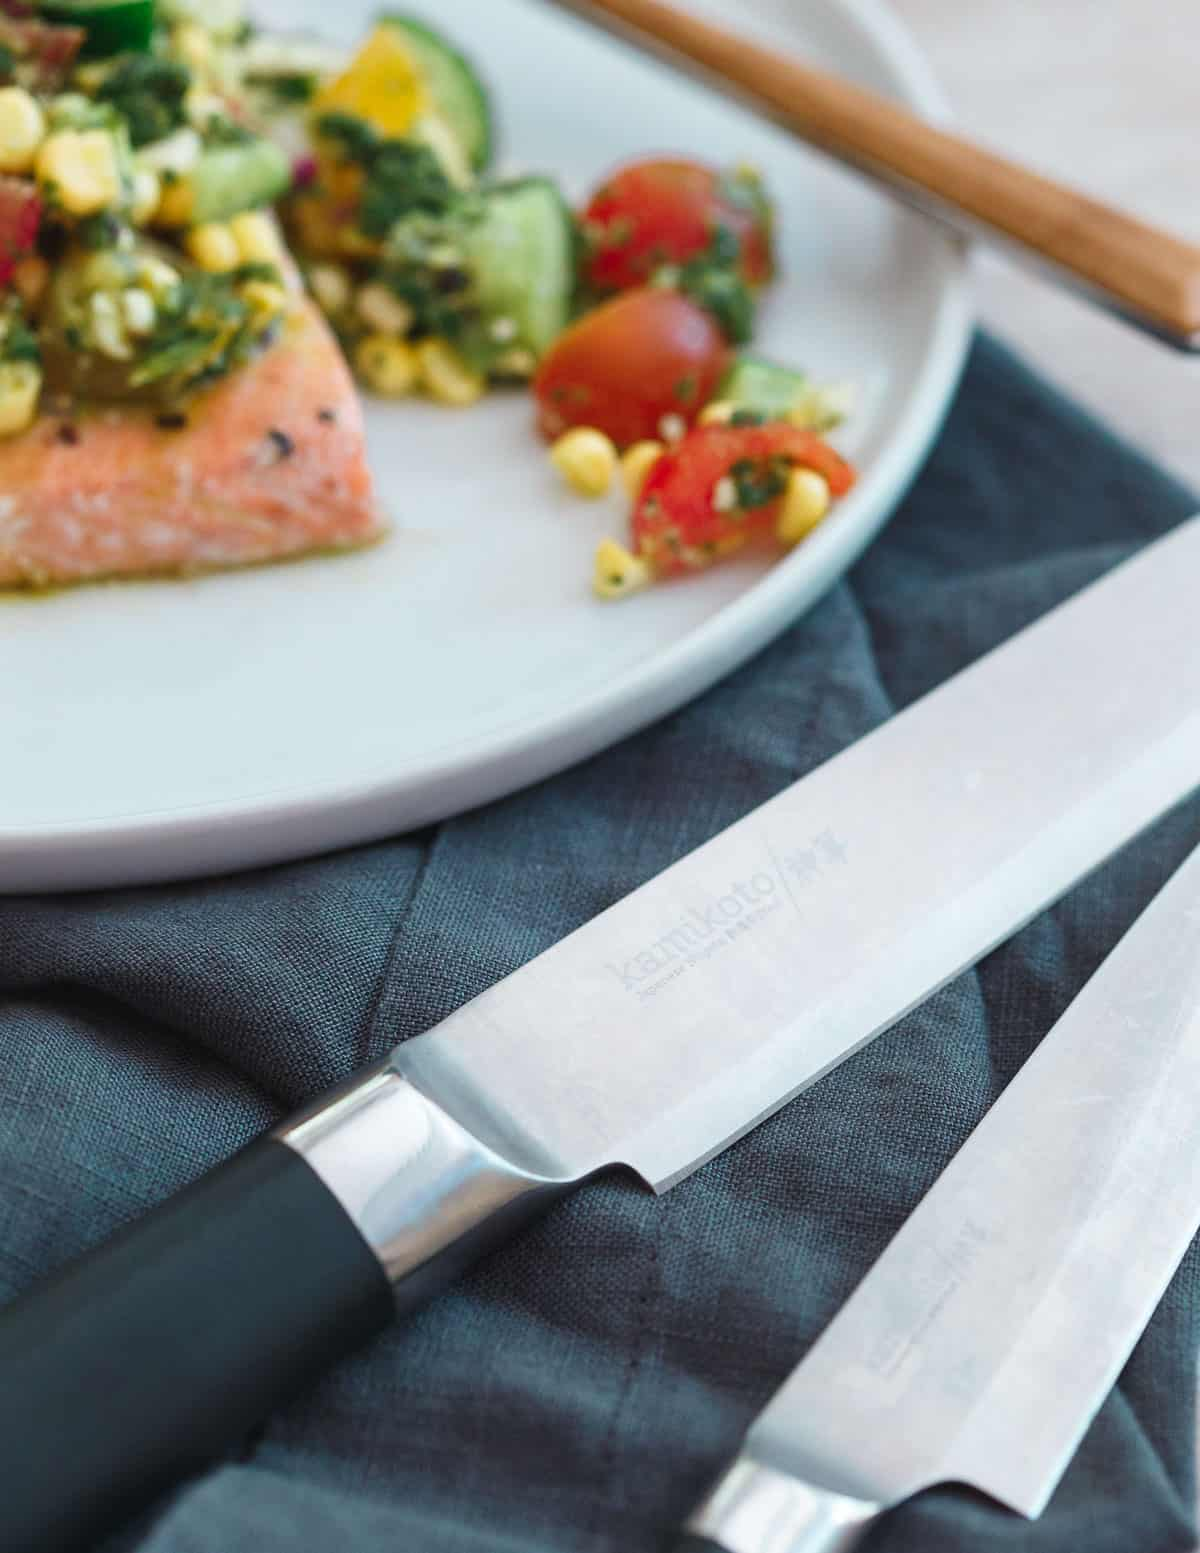 Kamikoto knives are the perfect tool to prepare this seared salmon with tomato corn salsa.